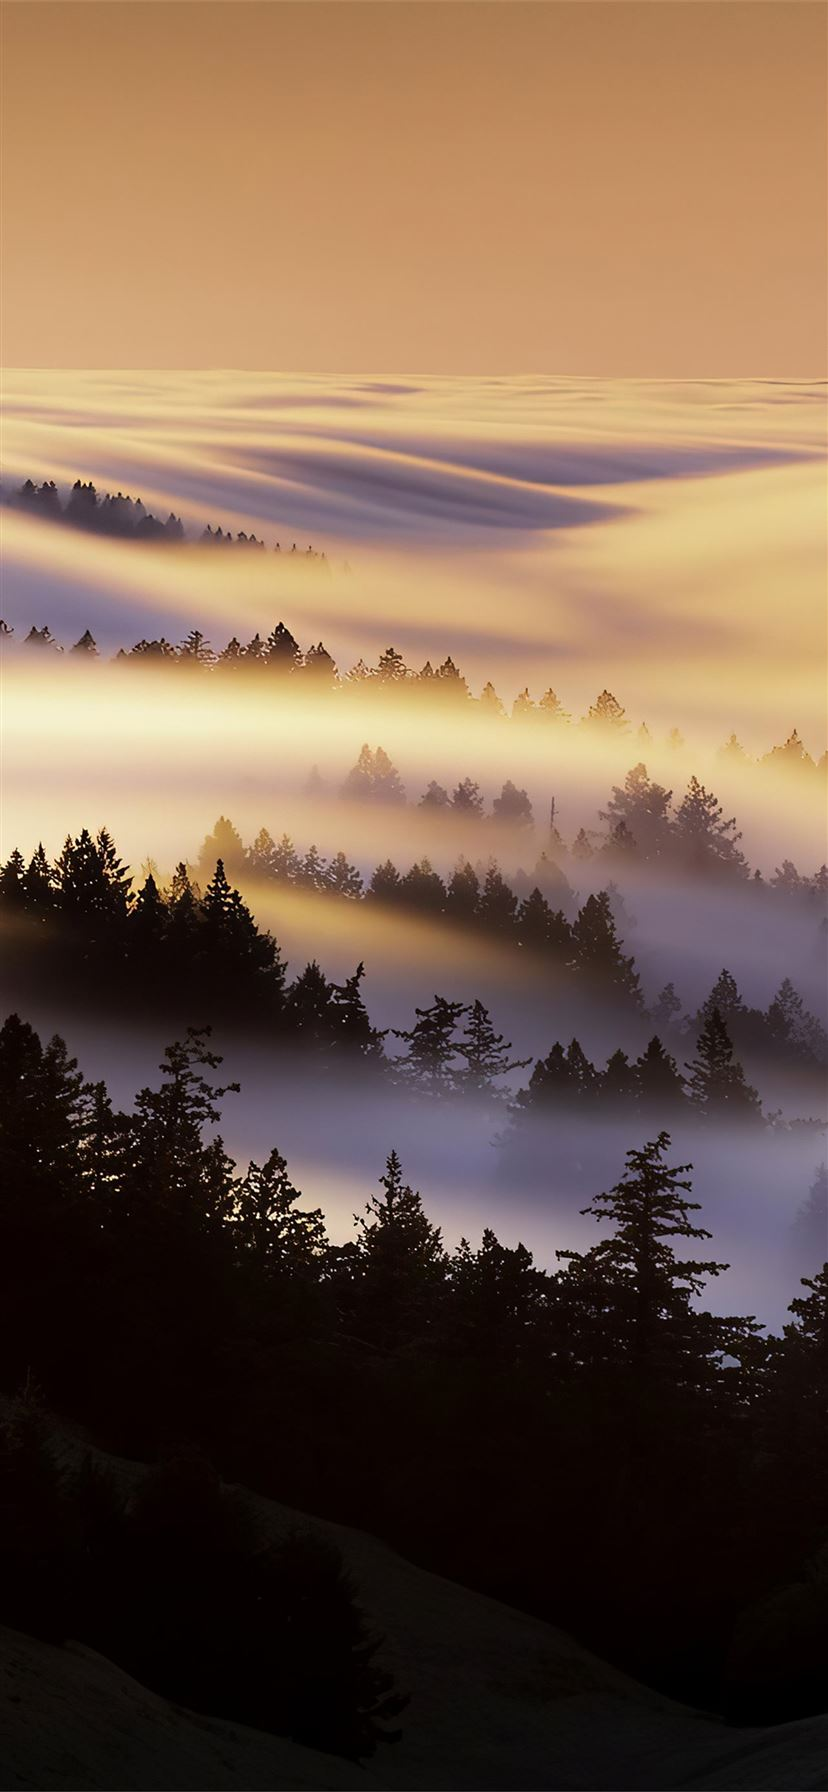 marin county mist morning 4k iPhone 11 wallpaper